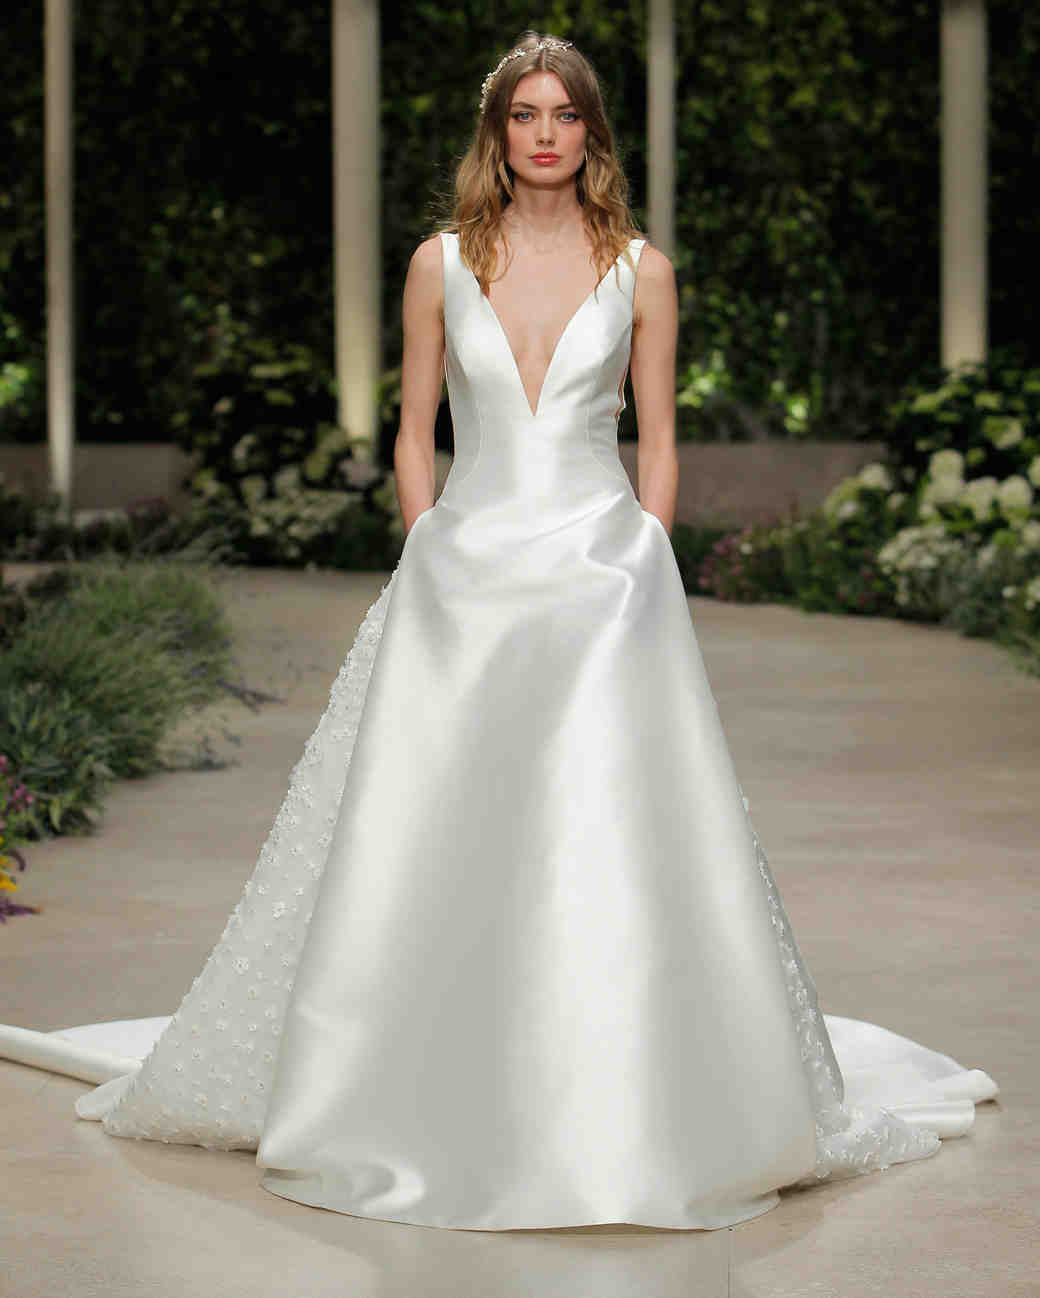 pronovias wedding dress spring 2019 v-neck satin